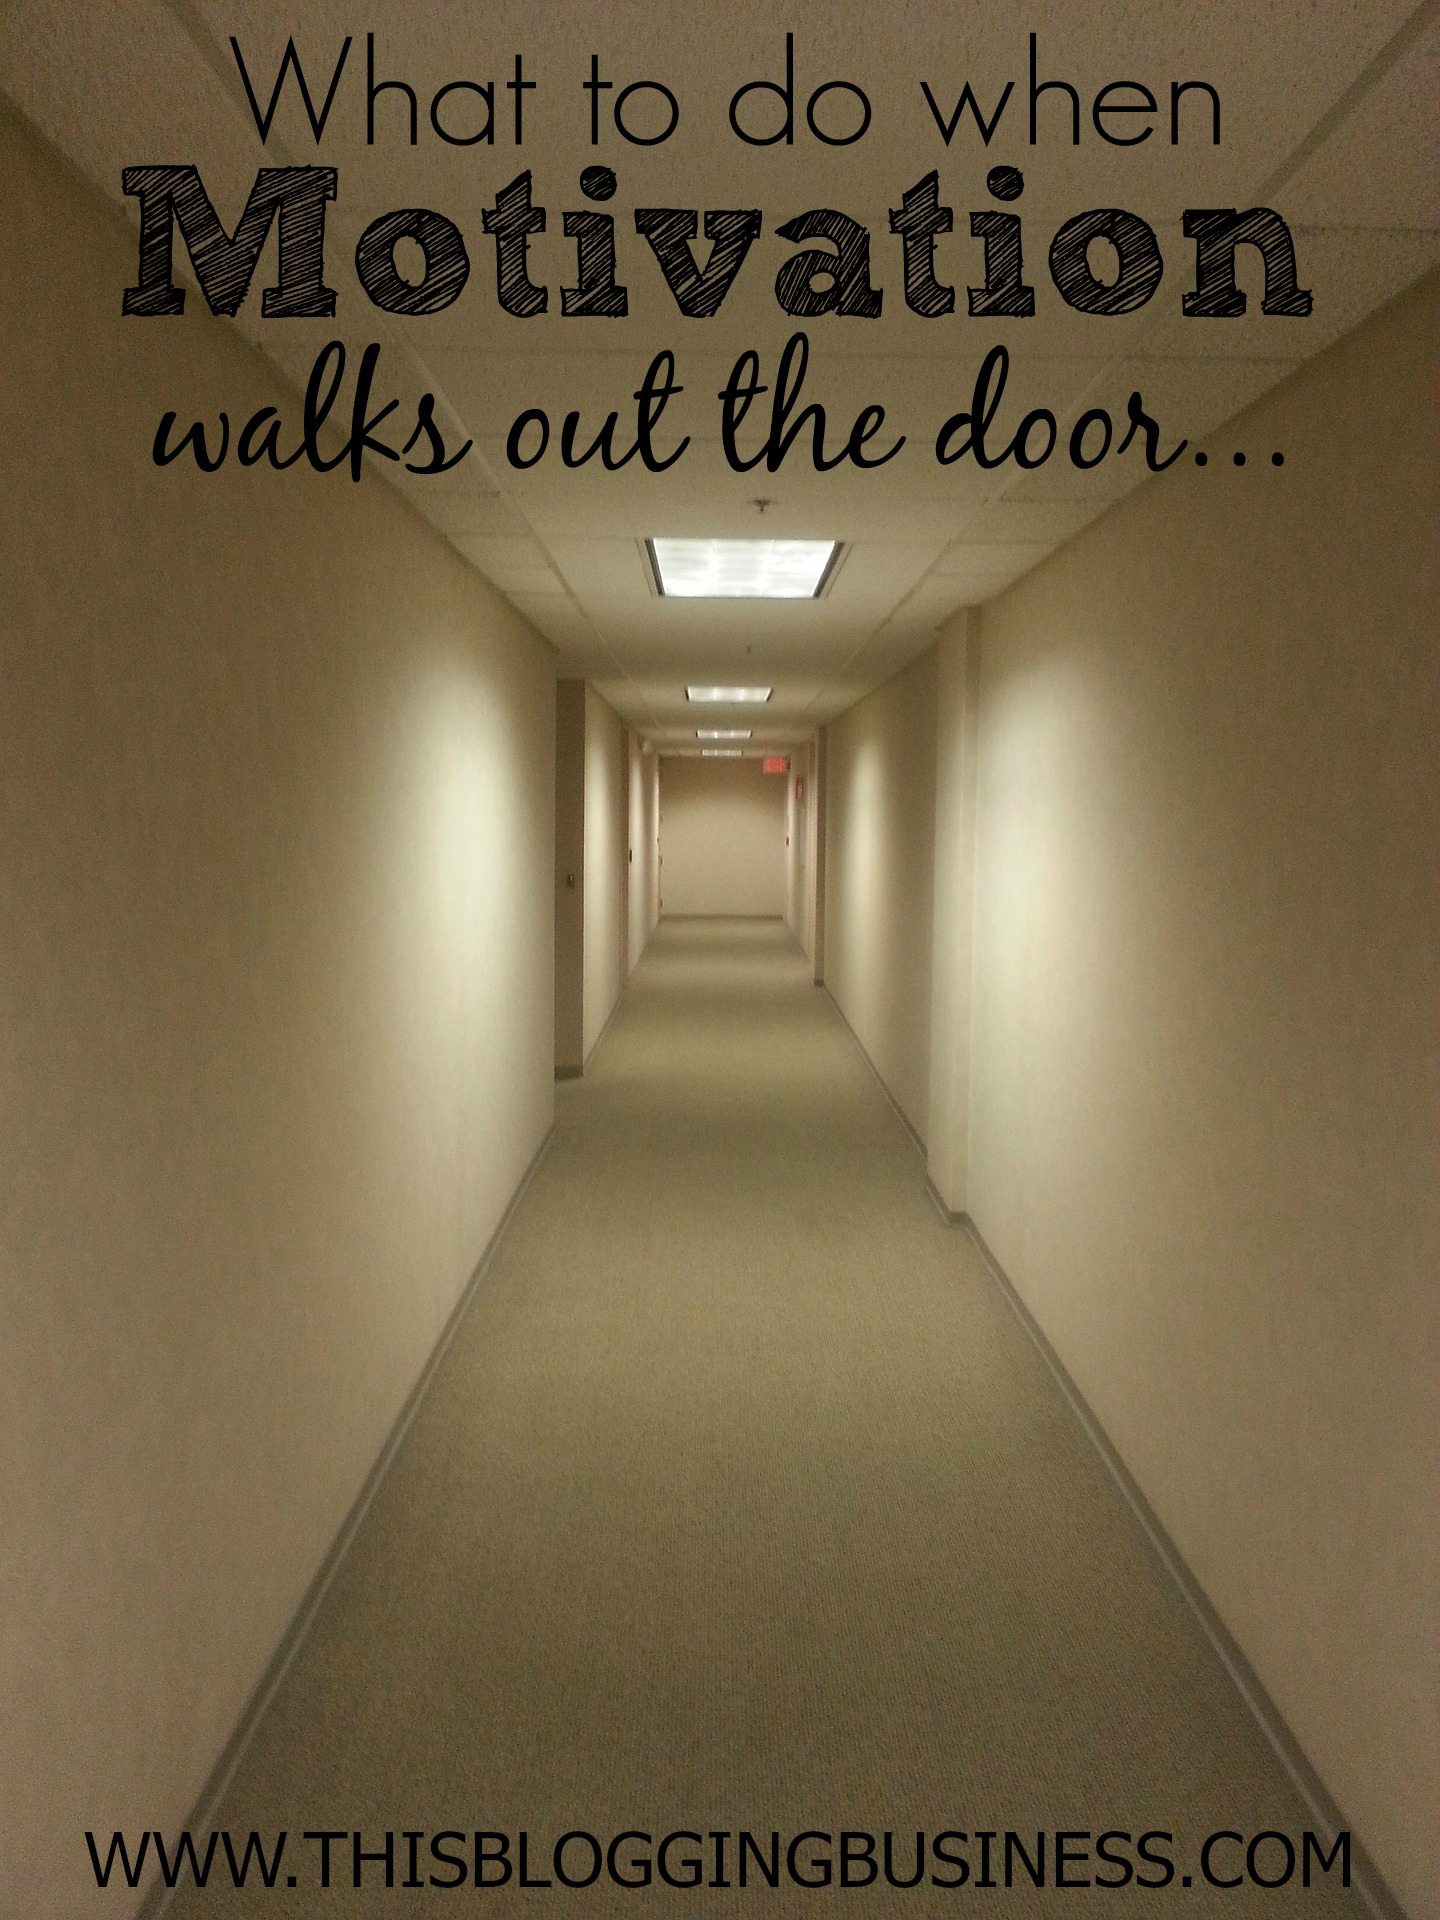 Motivation walks out the door - what to do when you just can't seem to make yourself do the things that you know you should... those things that move you closer to your goals. Here's one little trick I use to get myself to do those tasks which I seem to be always putting off.